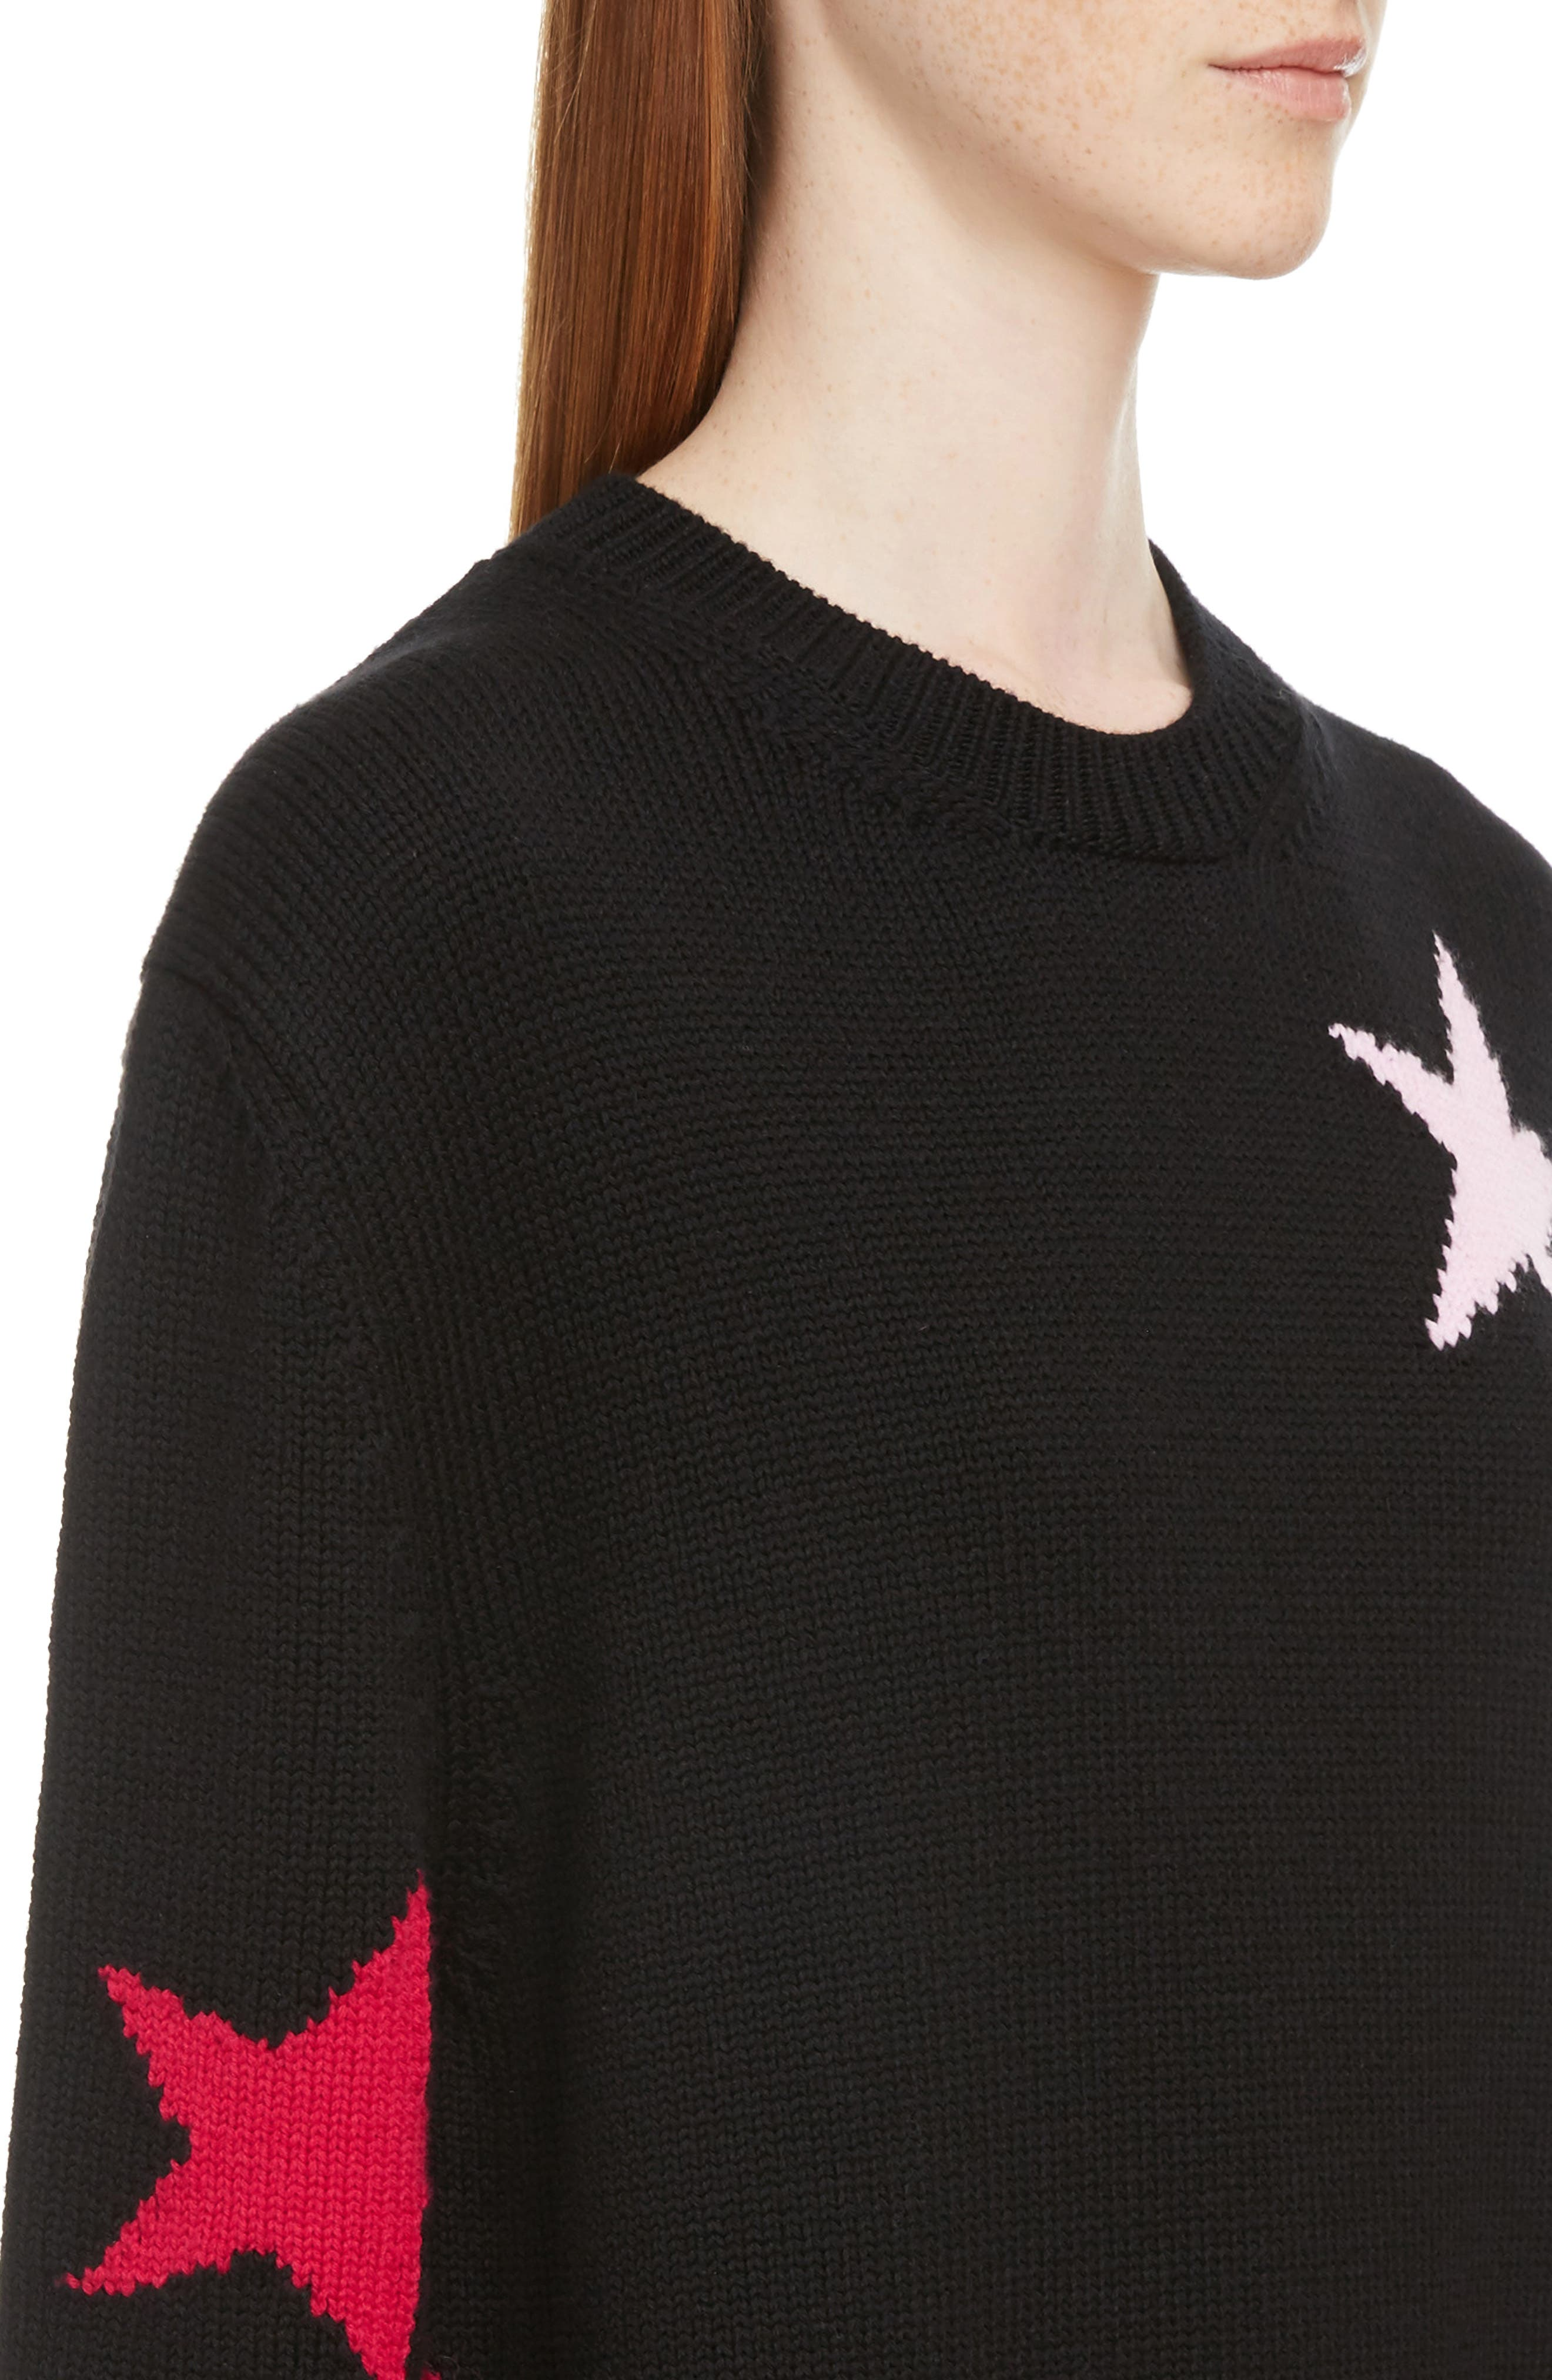 Star Cutout Wool Sweater,                             Alternate thumbnail 4, color,                             001